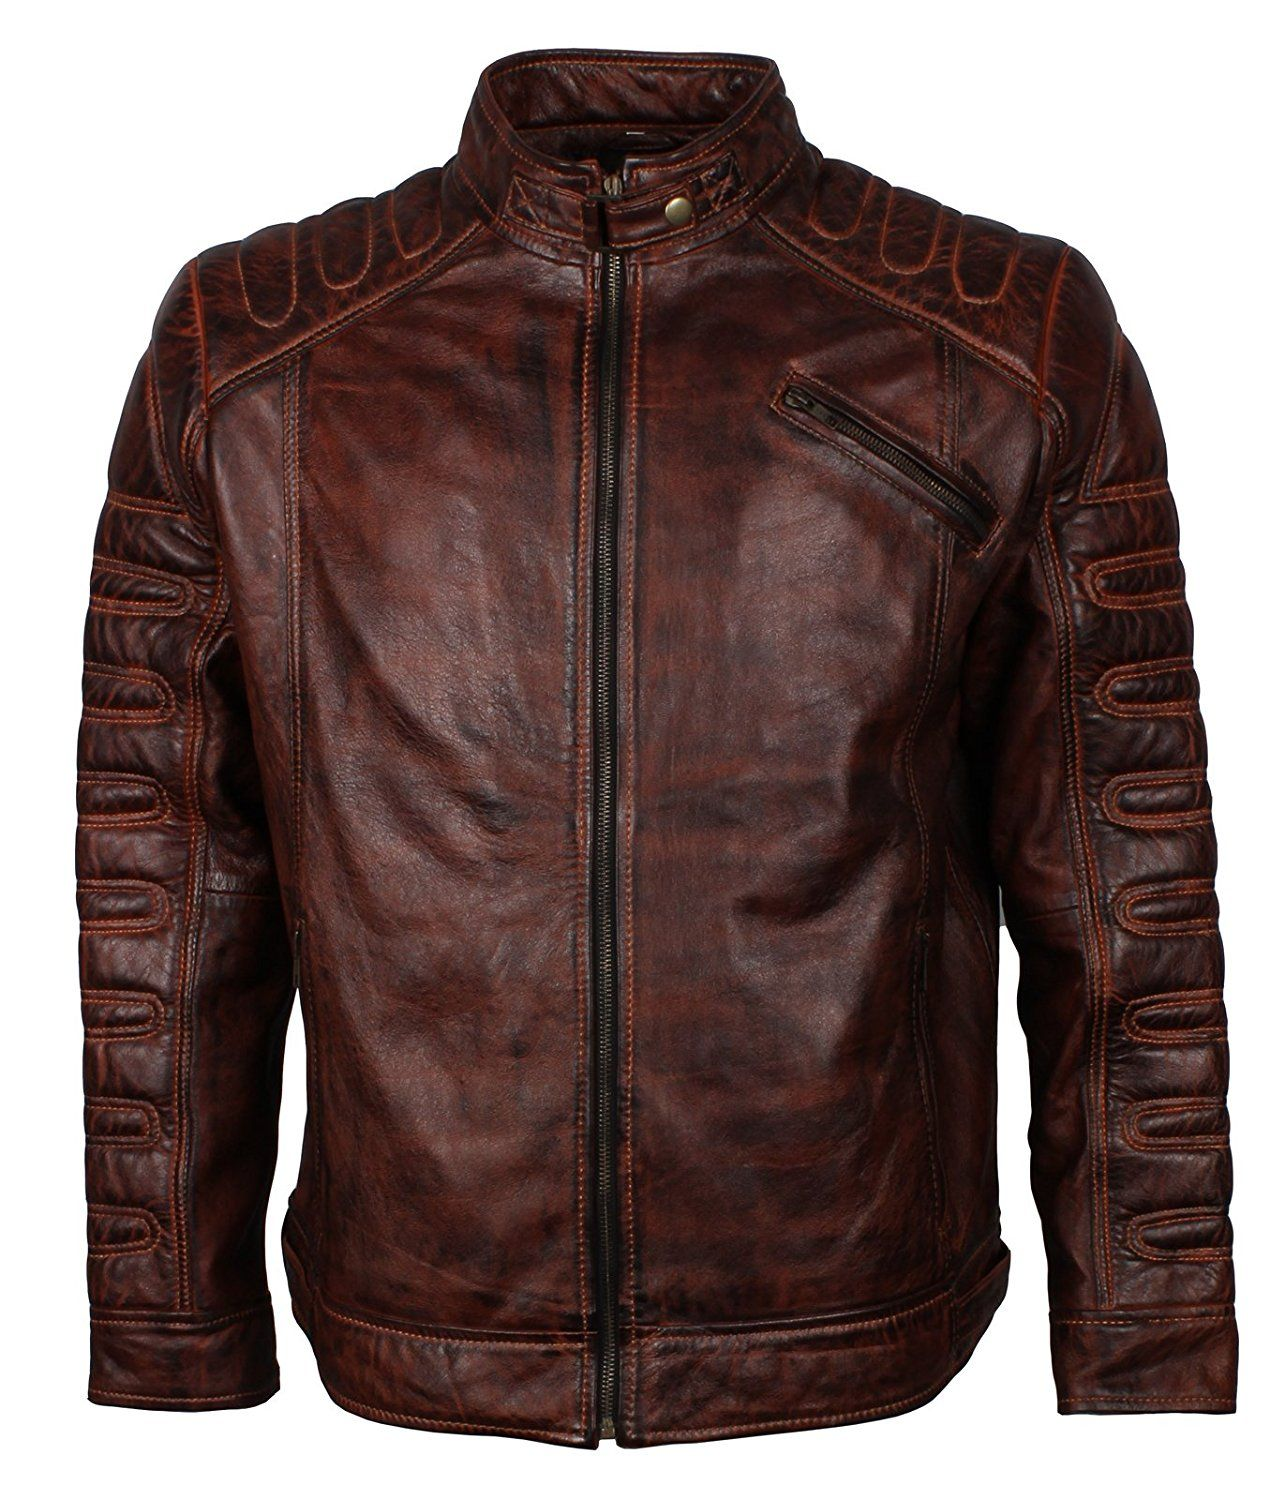 Mens Real Genuine Leather Jacket Bomber Classic Quilted Soft Premium Cafe Racer